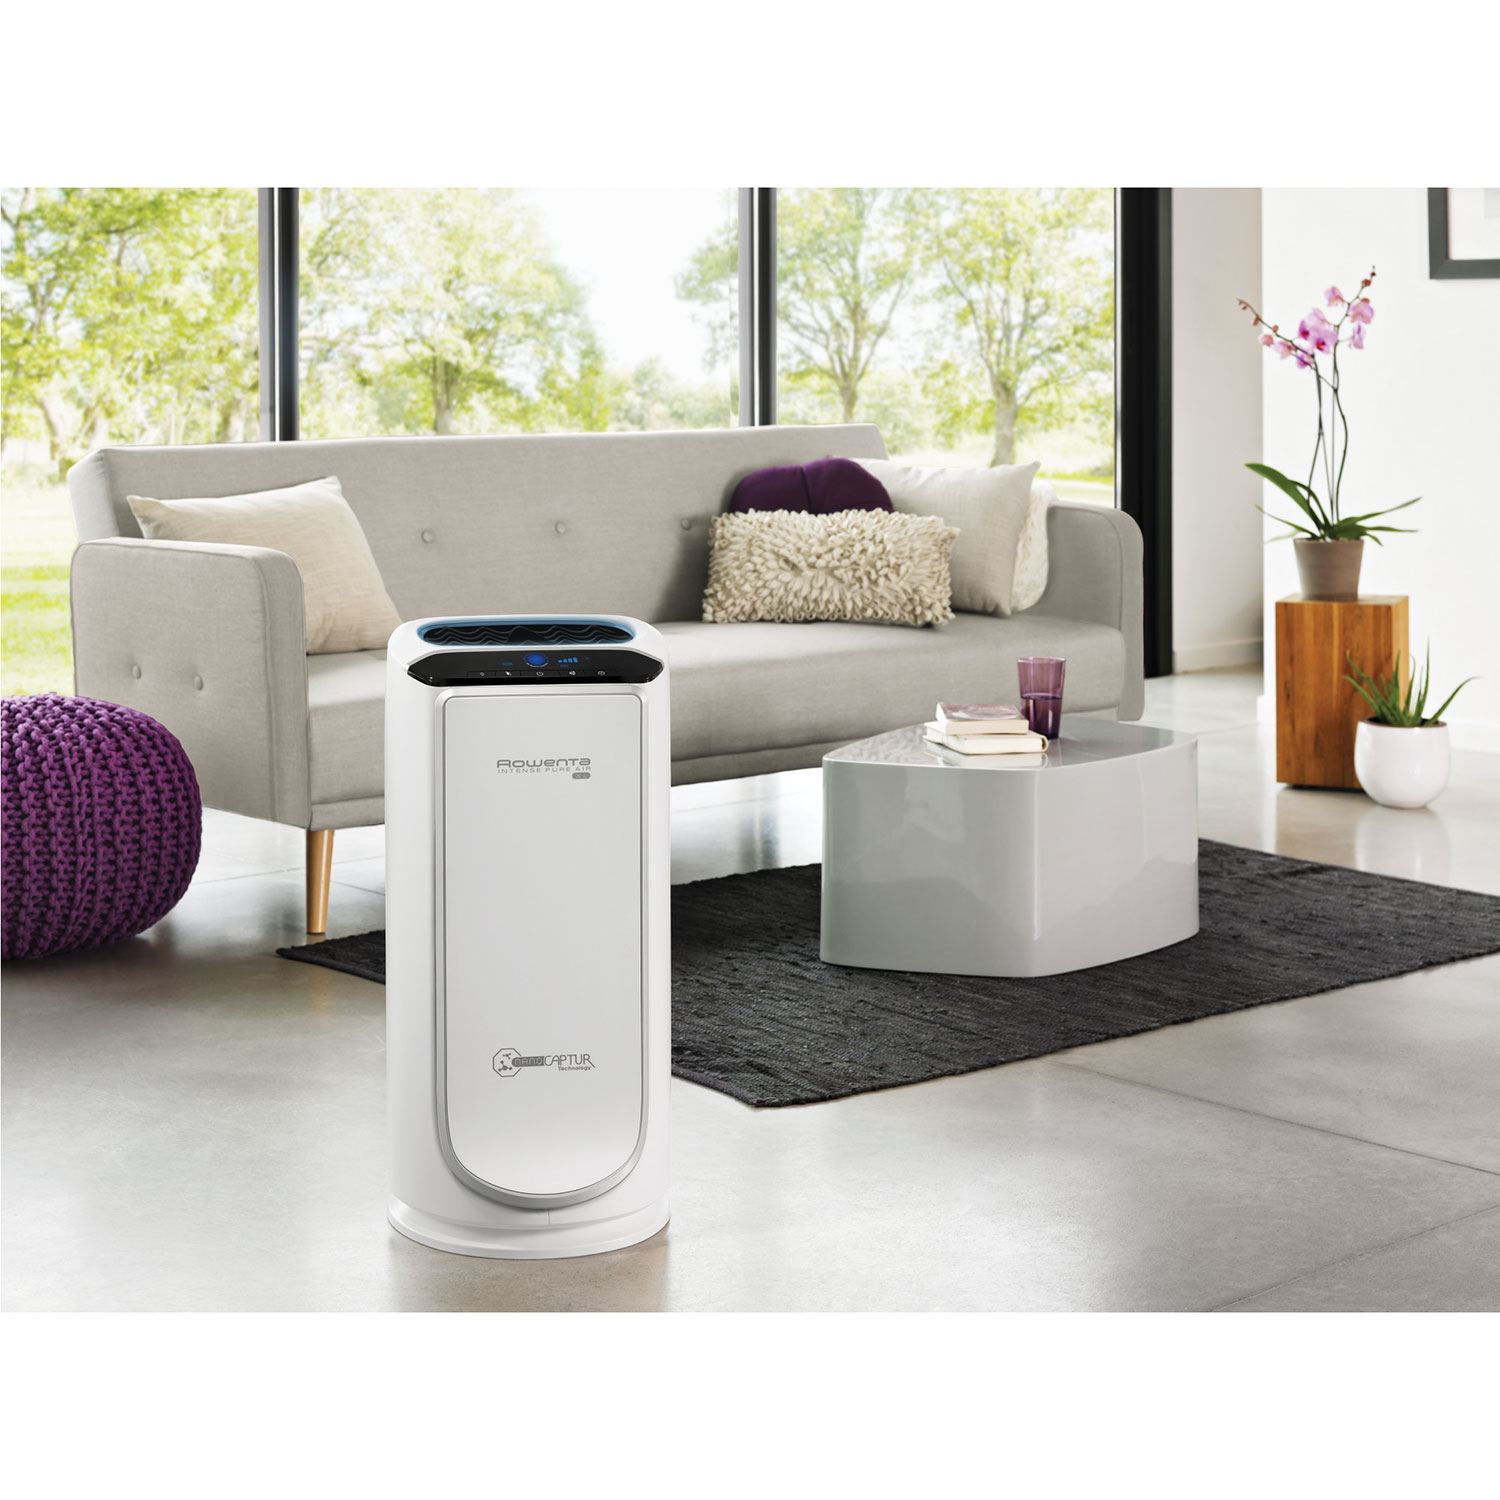 purificateur d air hepa photopure air purifier alcion. Black Bedroom Furniture Sets. Home Design Ideas